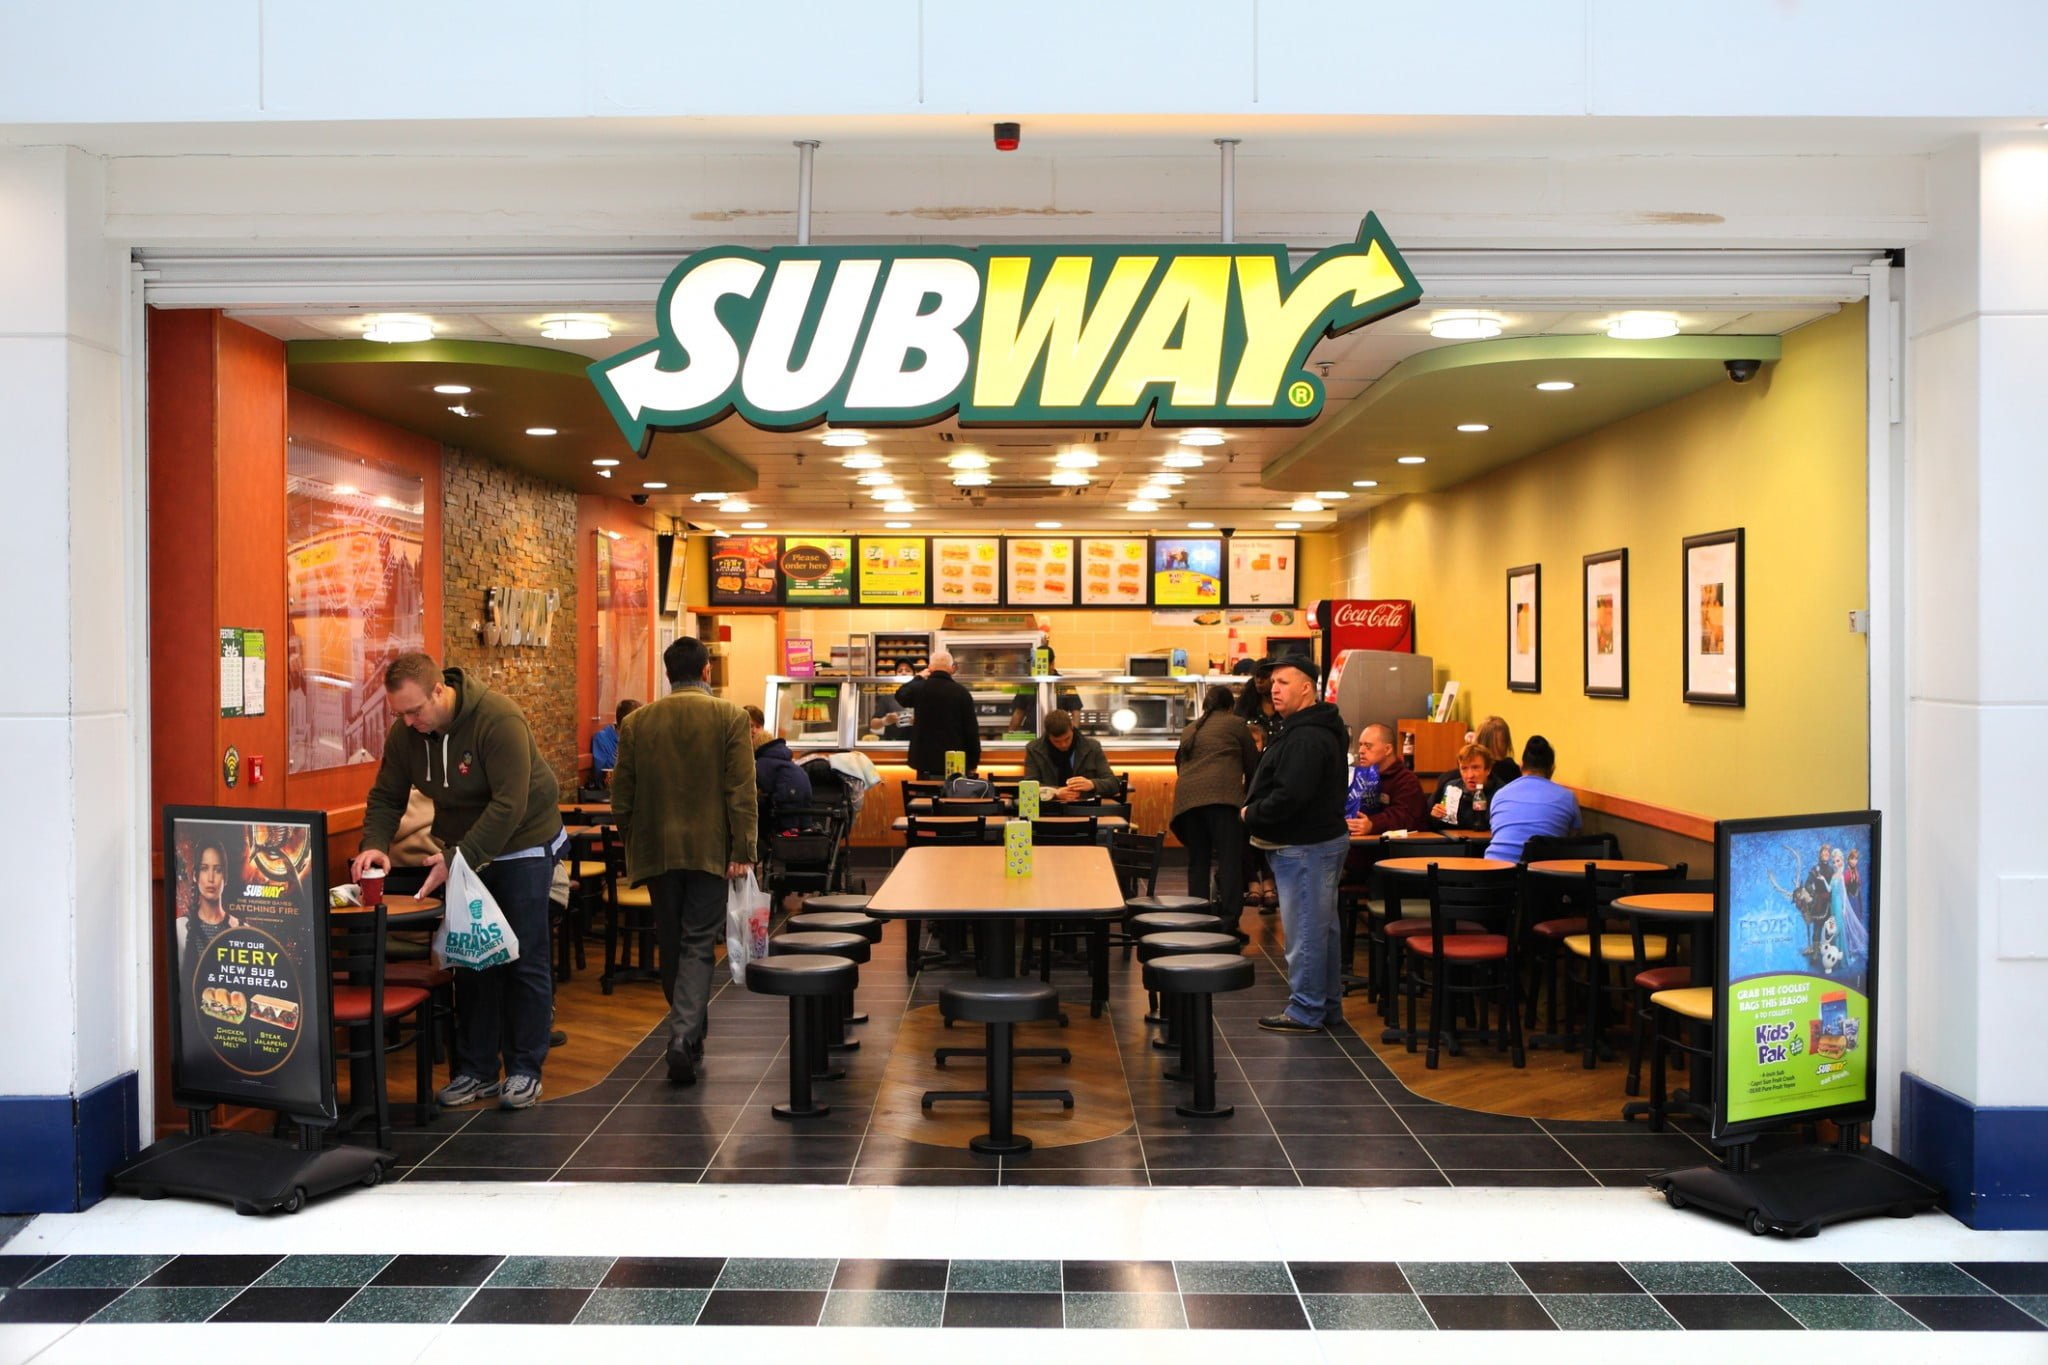 subway restaurant market segmentation Market analysis in the marketing strategy of subway - the fast food market is flooded with mnc's and local food joints eating each other market shares subway with 45000+ outlets across the globe is the leading player in the qsr industry (quick service restaurants) and is ahead of many chains like mcdonald's, kfc , and dominos etc.